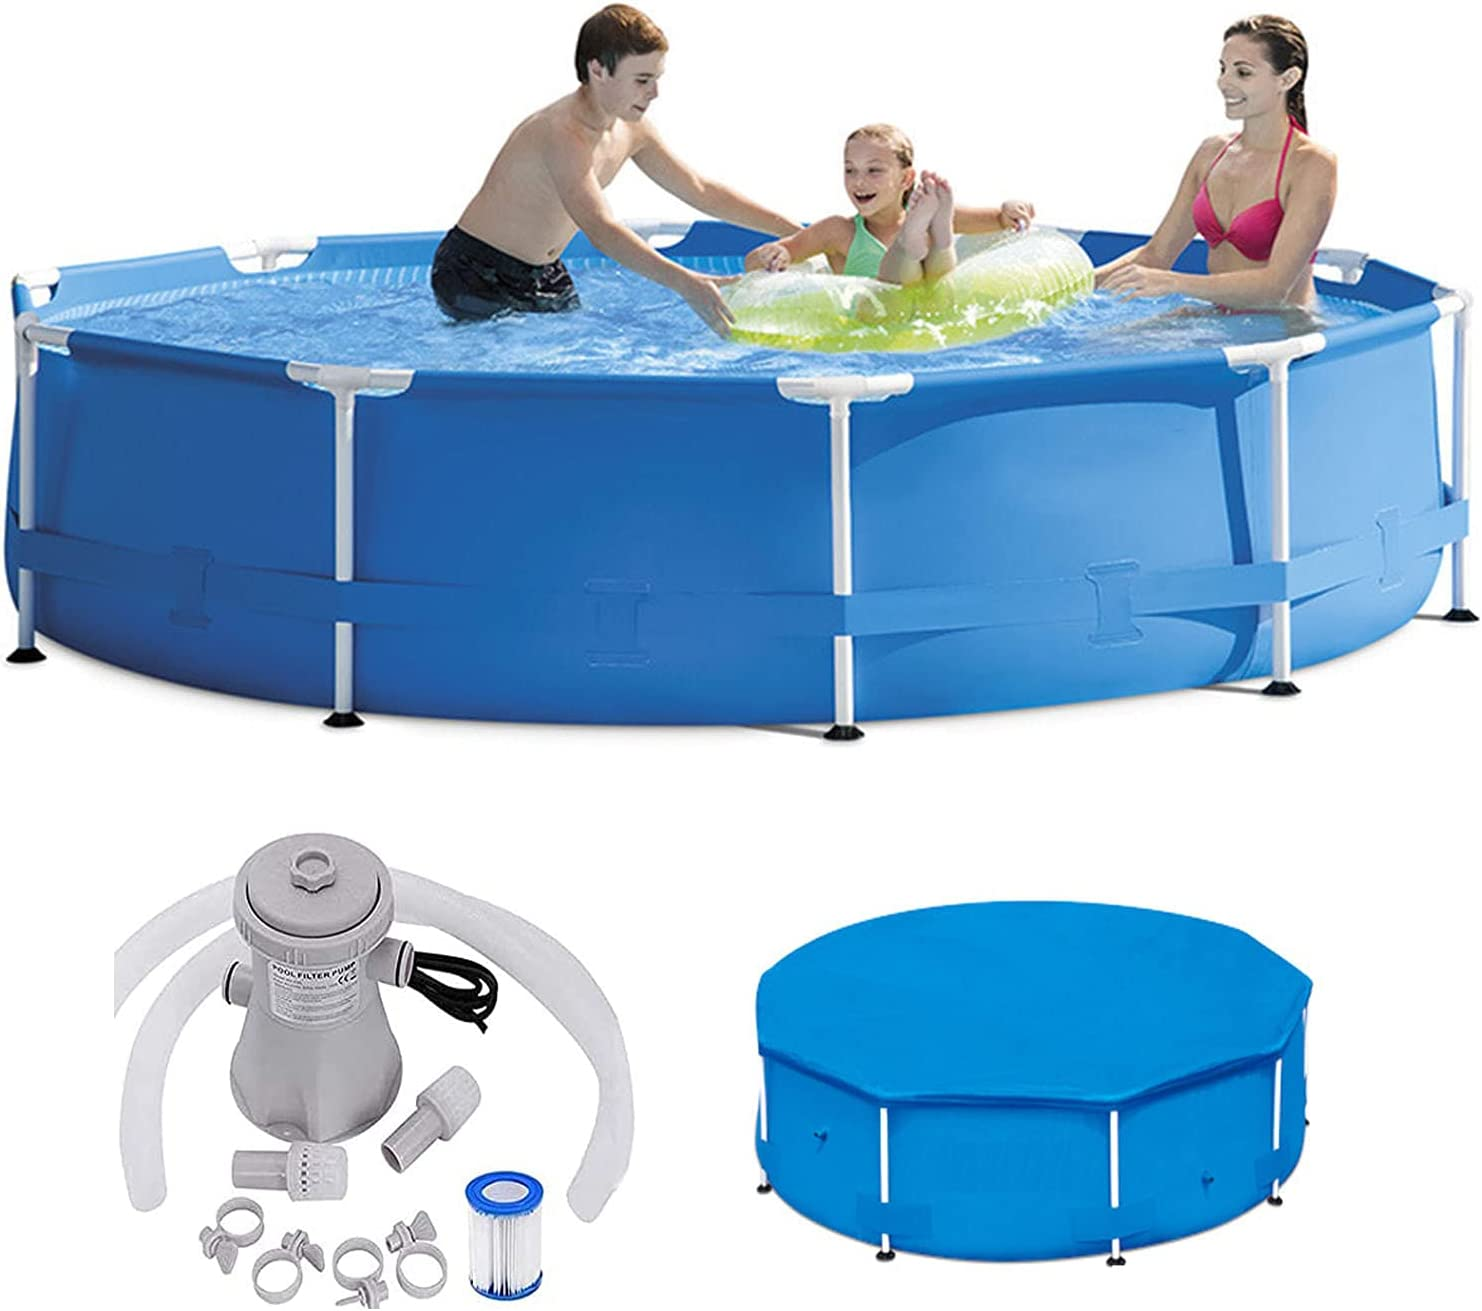 Pool Above Ground Round Challenge the lowest price Swimm Frame Metal Prism Discount mail order